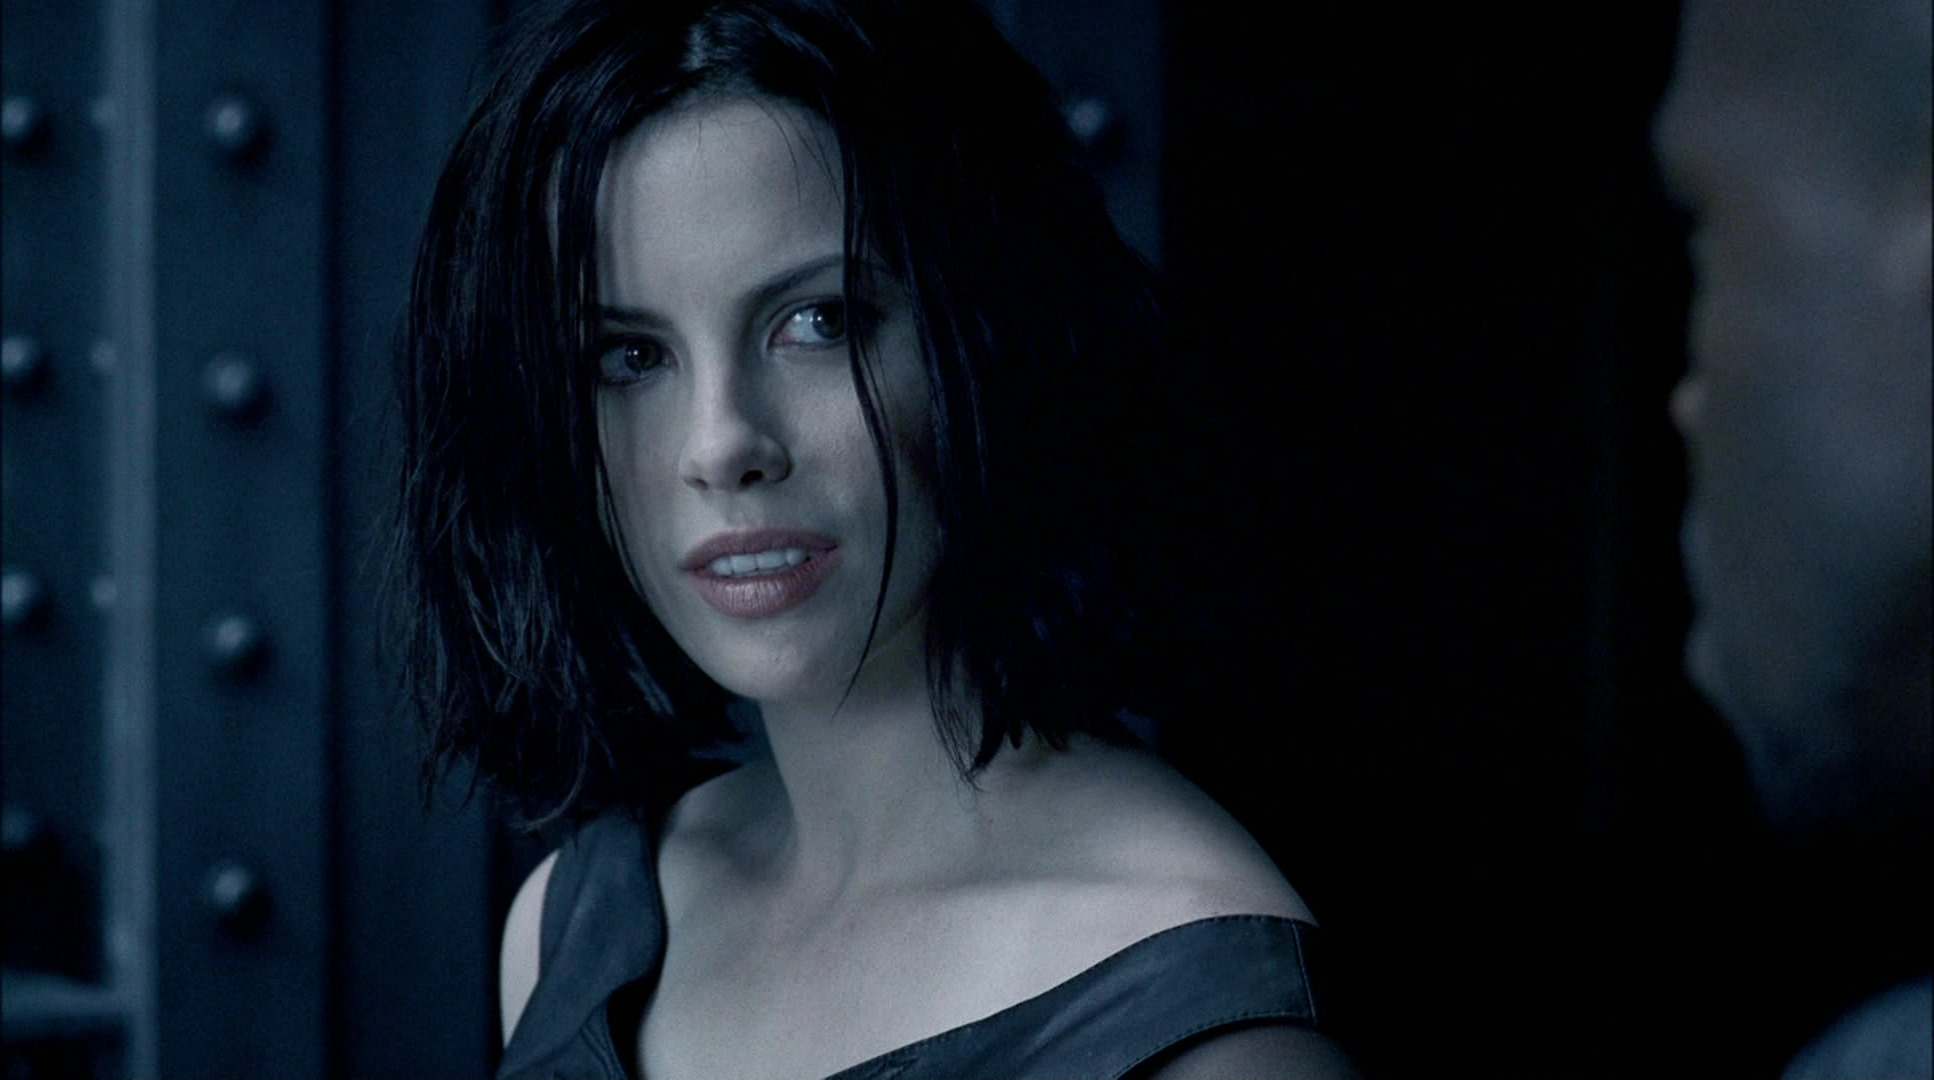 underworld � kate beckinsale as selene photo gallery